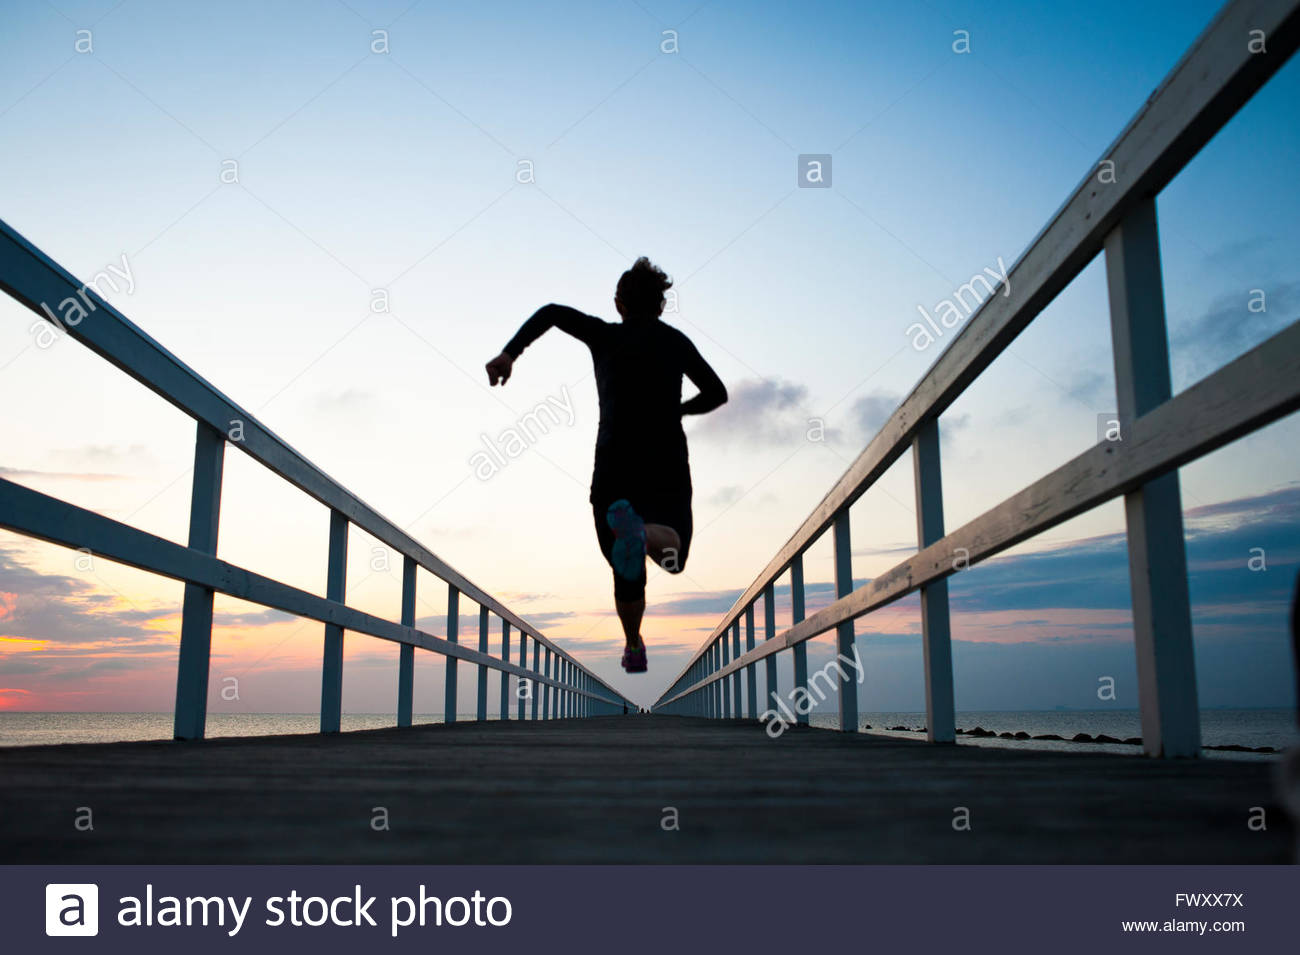 Sweden, Skane, Malmo, Young woman running on pier at sunset - Stock Image